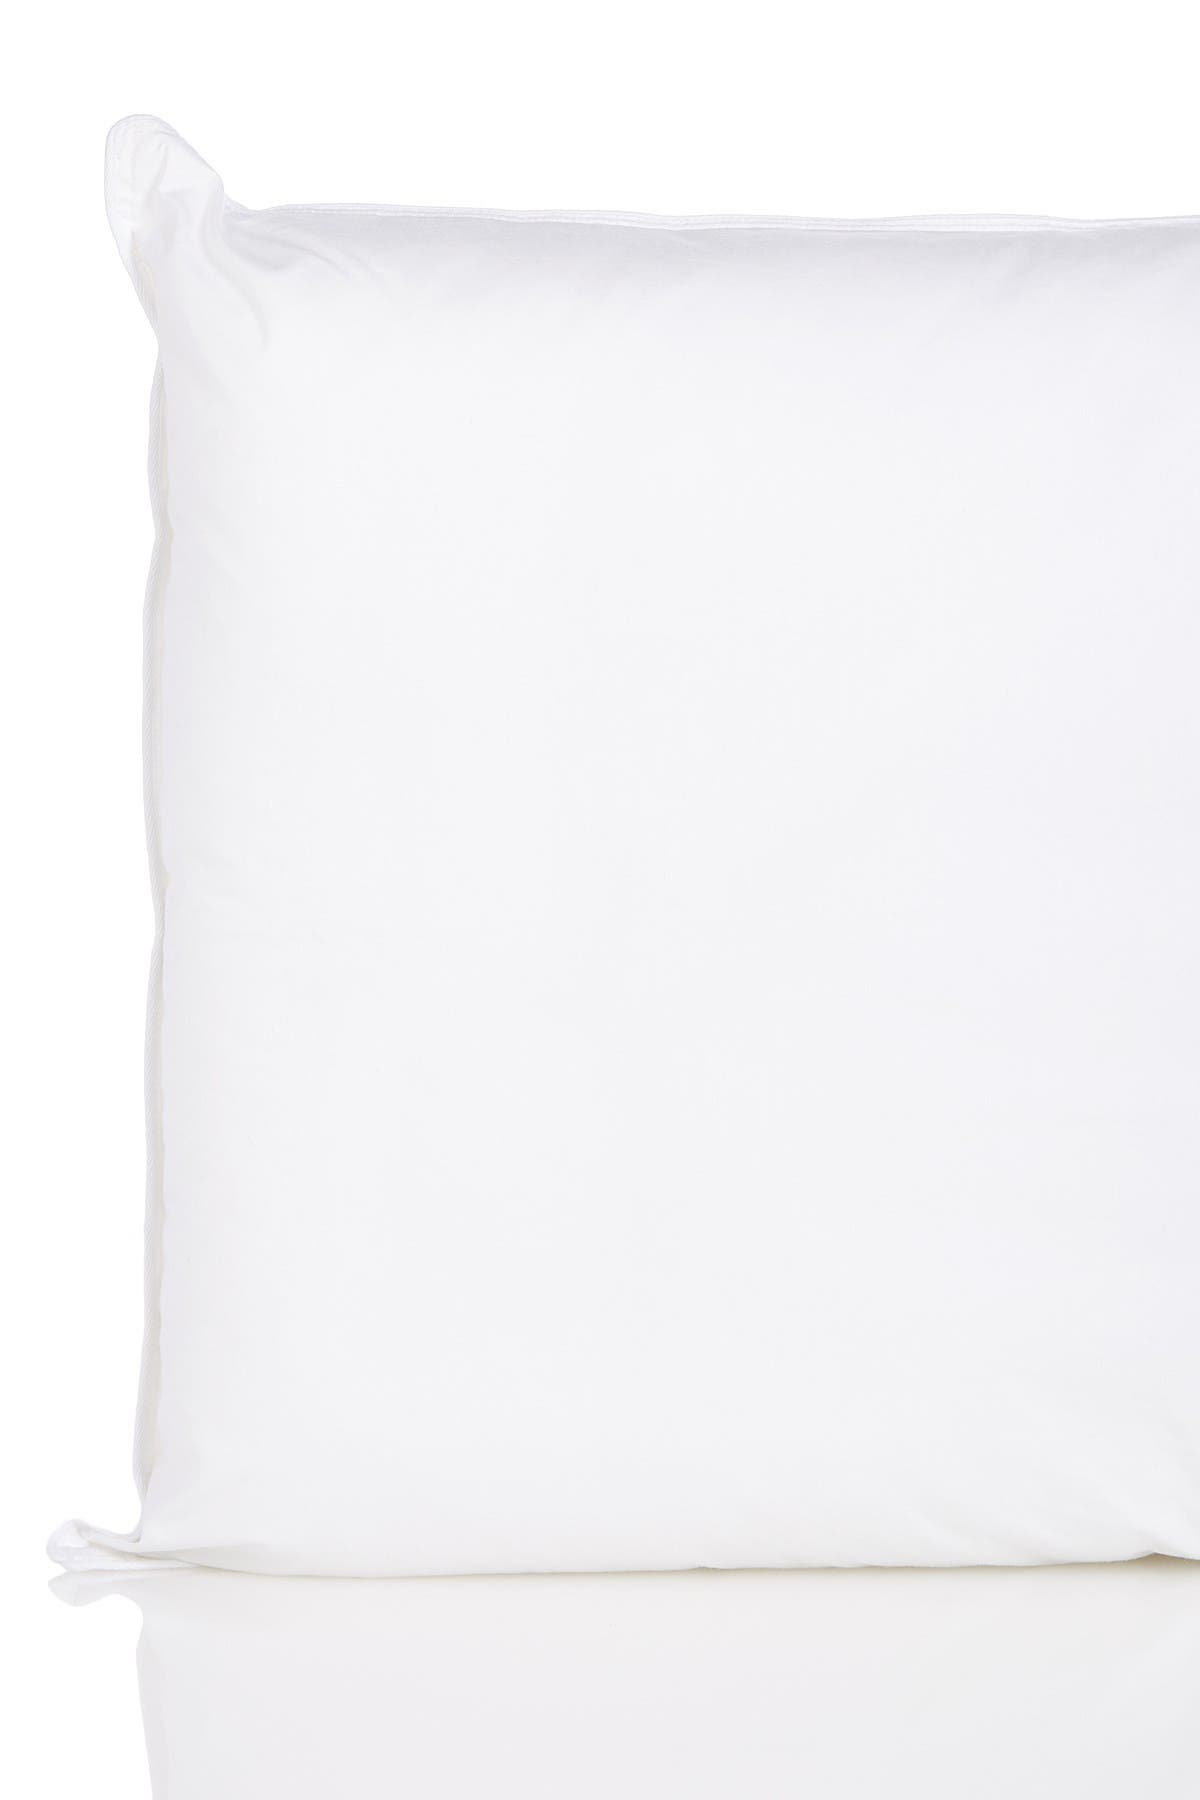 Image of Nordstrom Rack Standard Single Washable Standard Pillow - White